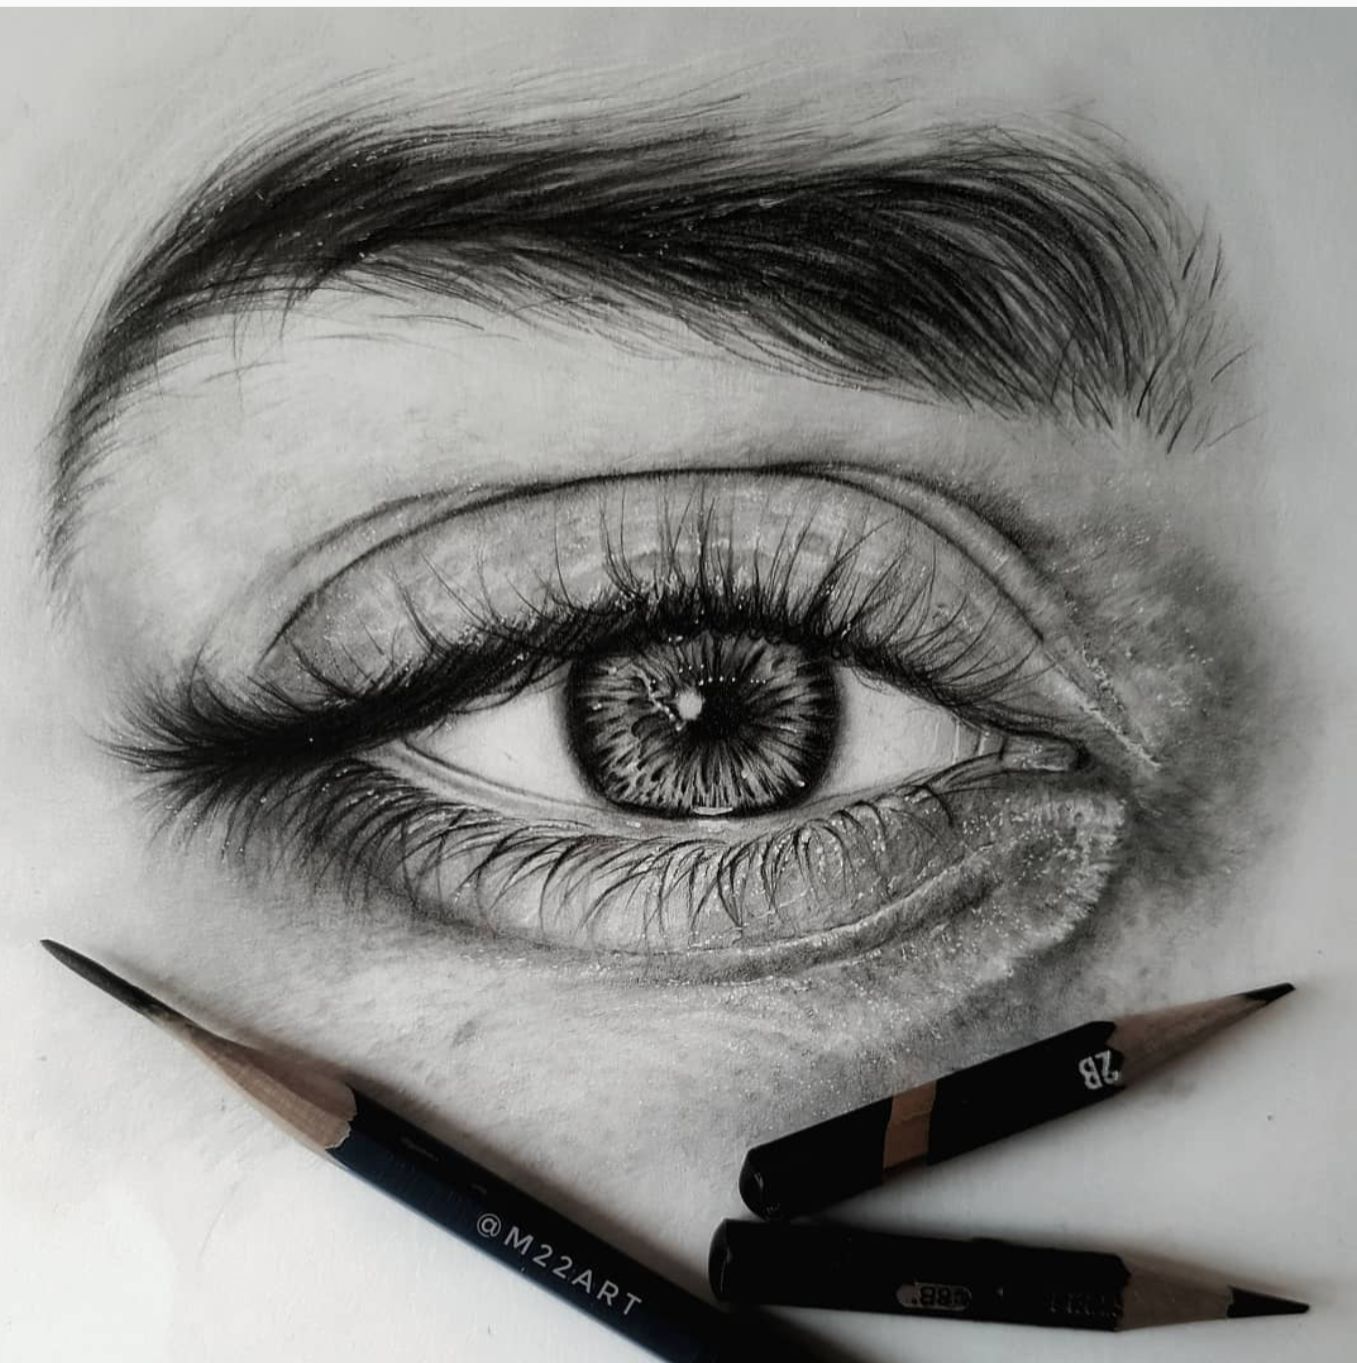 Open Your Eyes Look Within Are You Satisfied With The Life You Re Living Bob Marley Outstanding Artworks By M22art Beautiful Art Eye Art Pencil Art